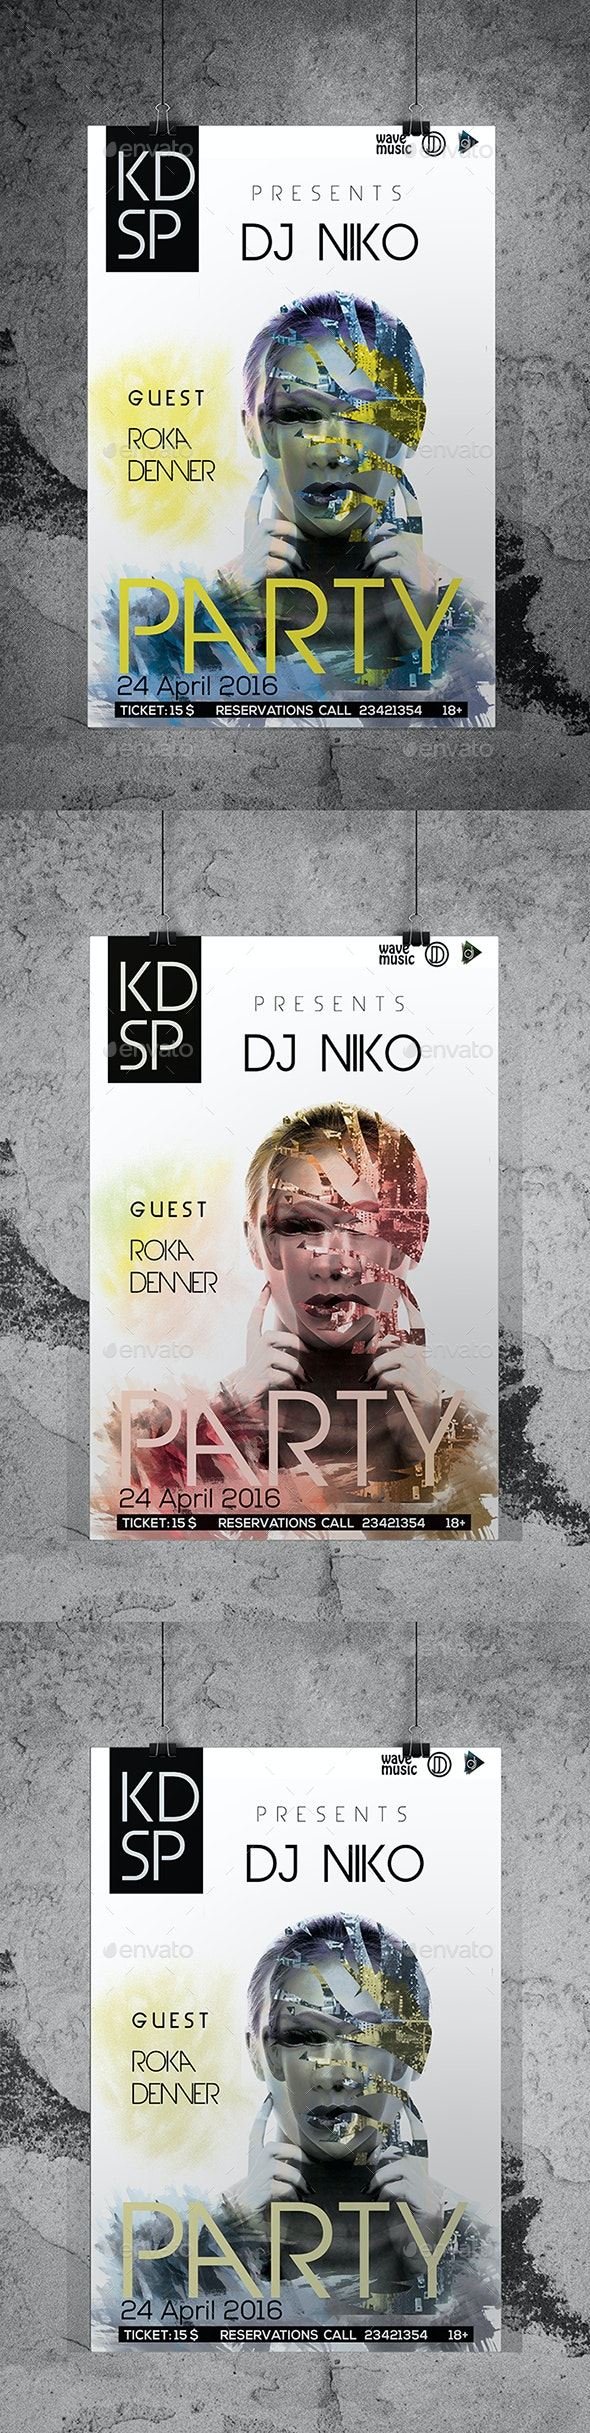 DJ Club Party Flyer/Poster Custom PSD File by sagaciousdesign